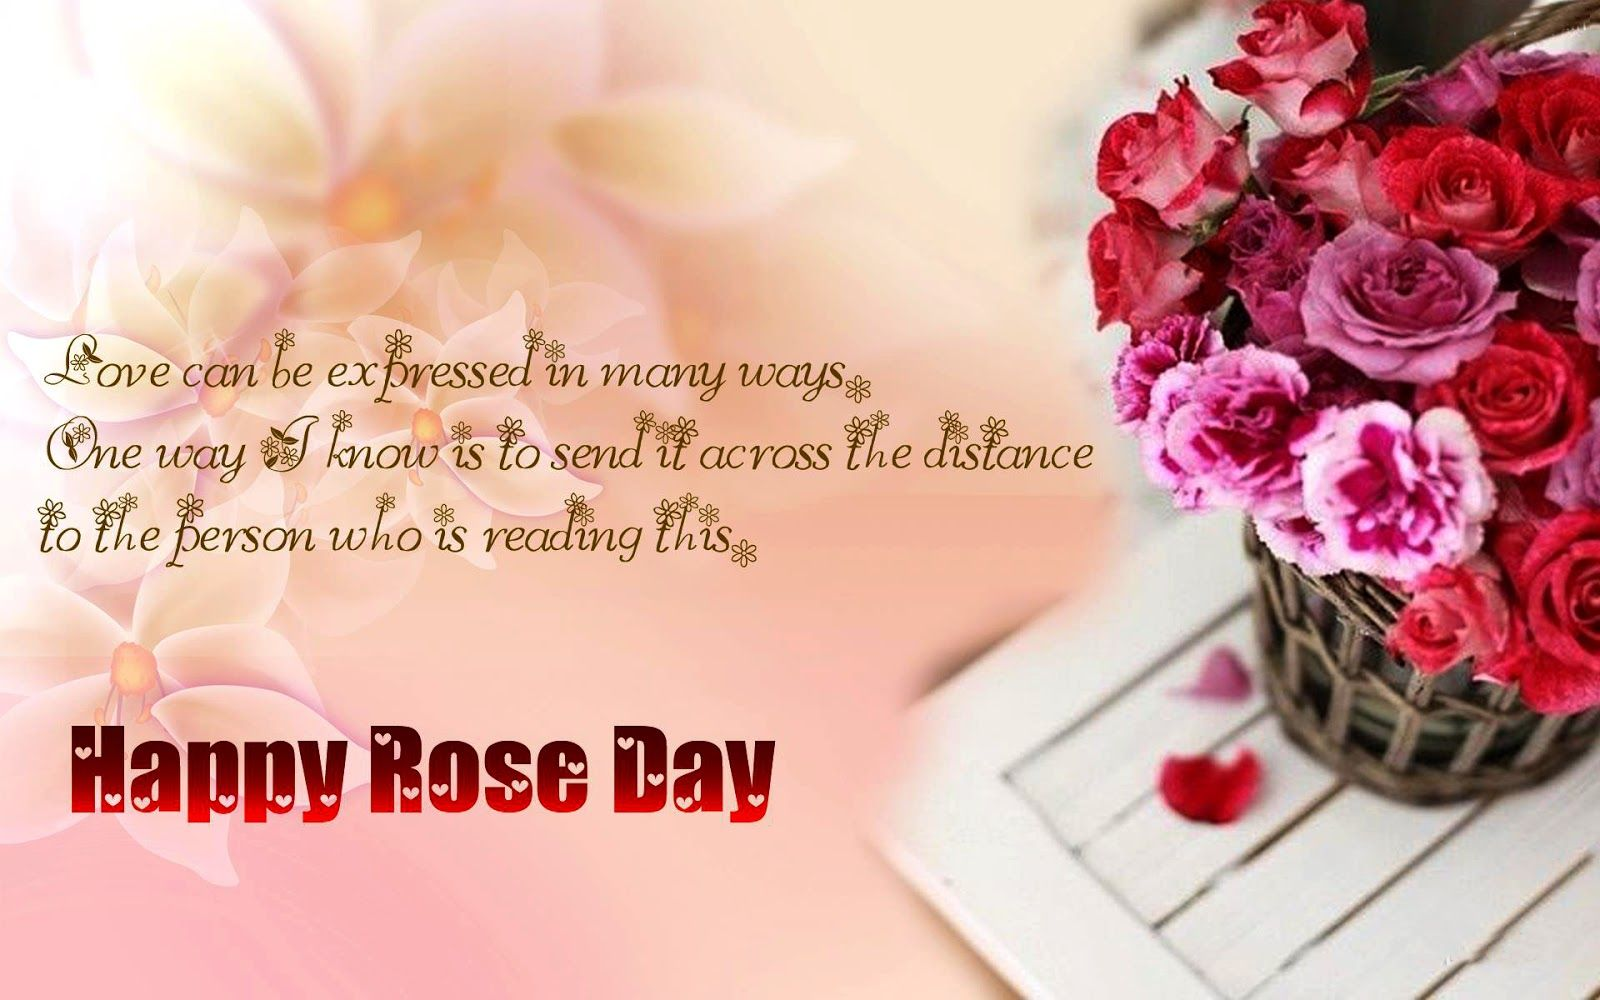 Happy Rose Day Wallpapers Hd Download Free 1080p Happy Rose Day Wallpaper Happy Rose Day Rose Day Wallpaper